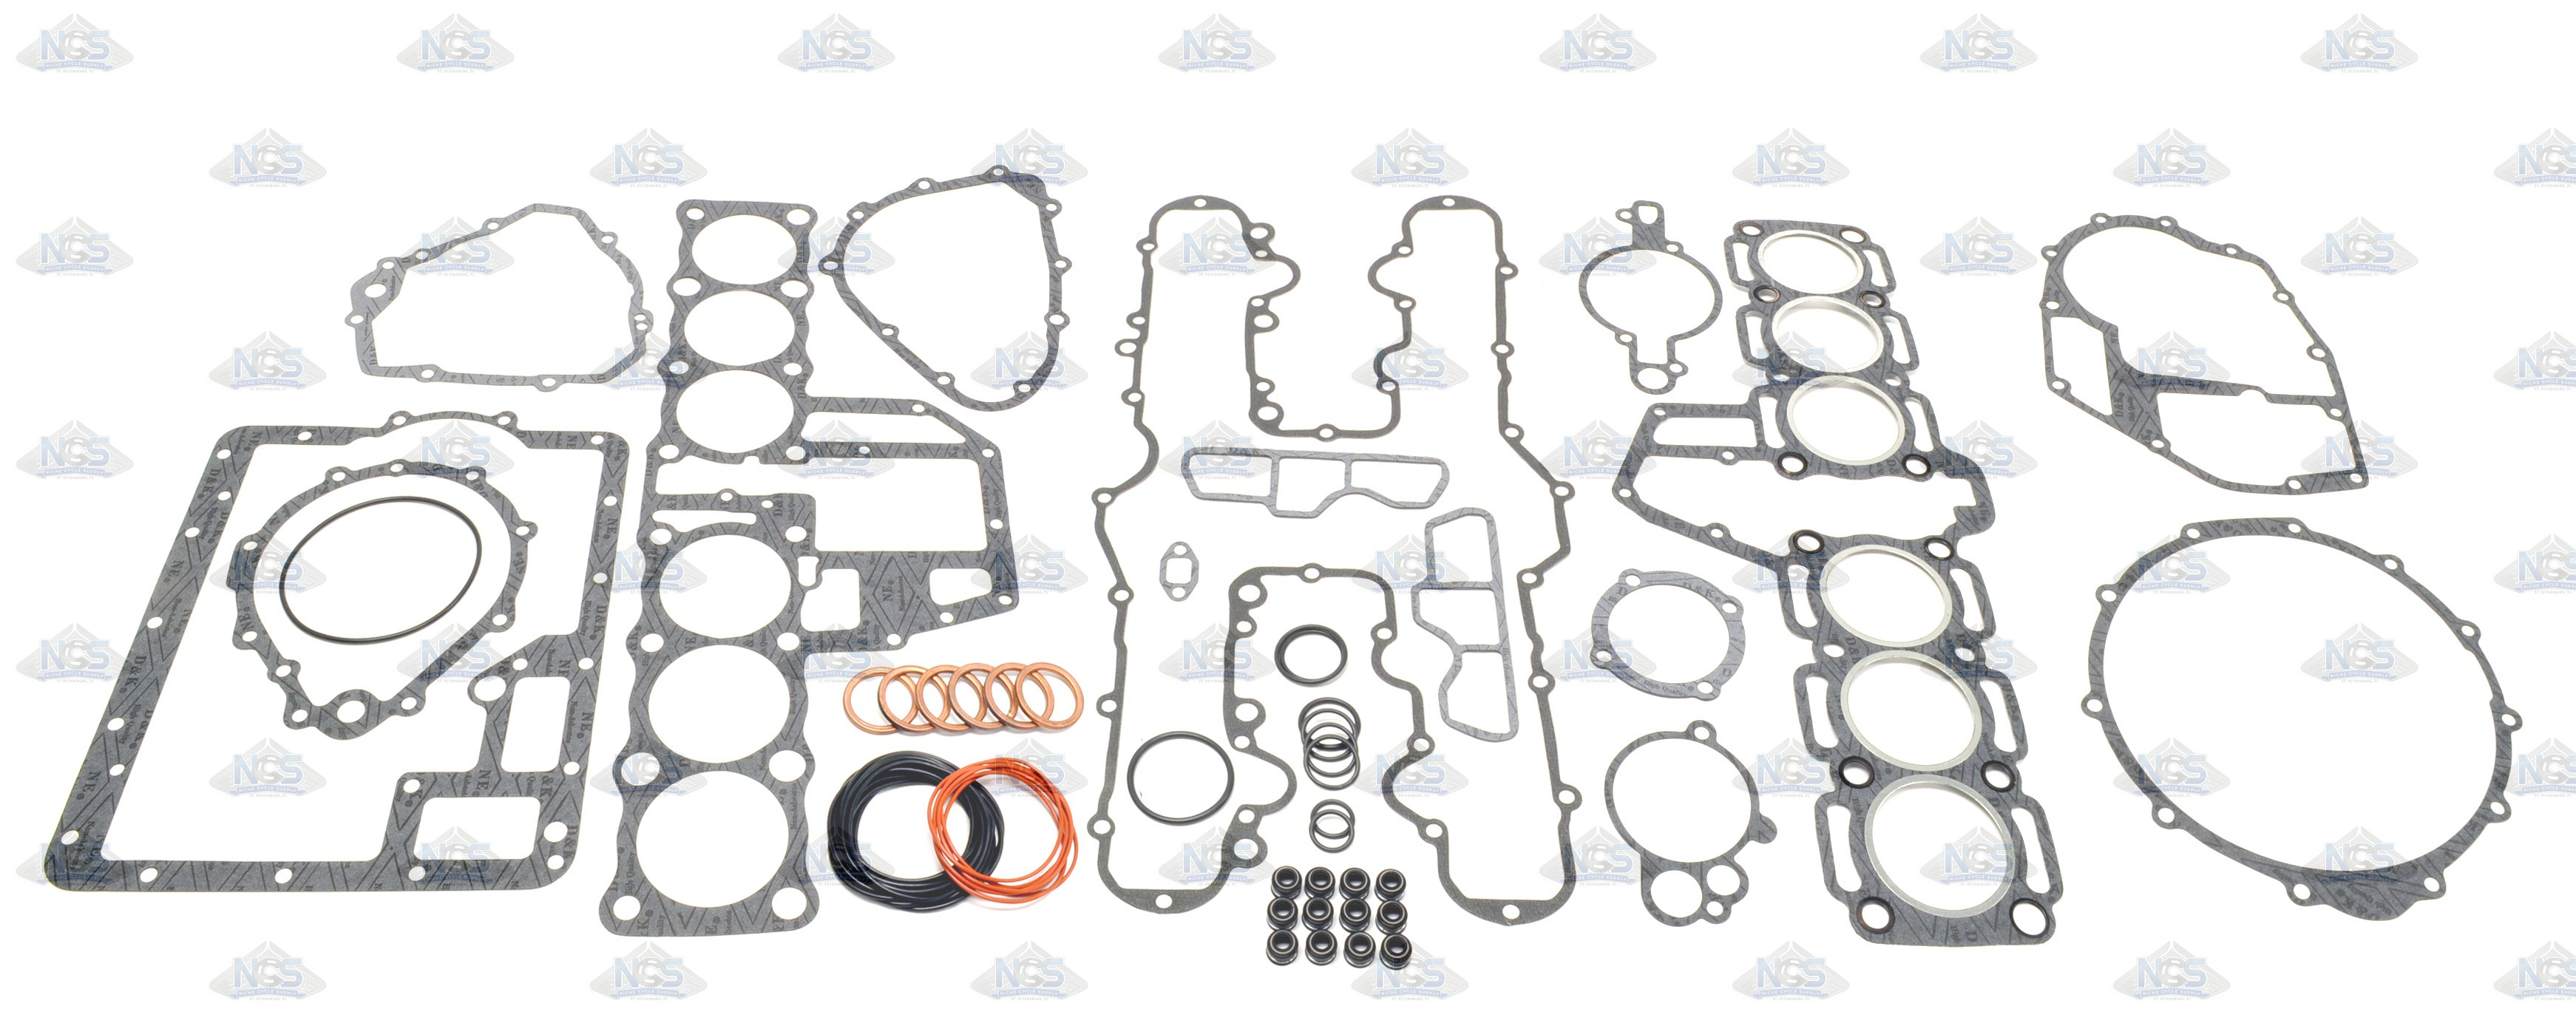 Kawasaki KZ1300 Engine Gasket Set